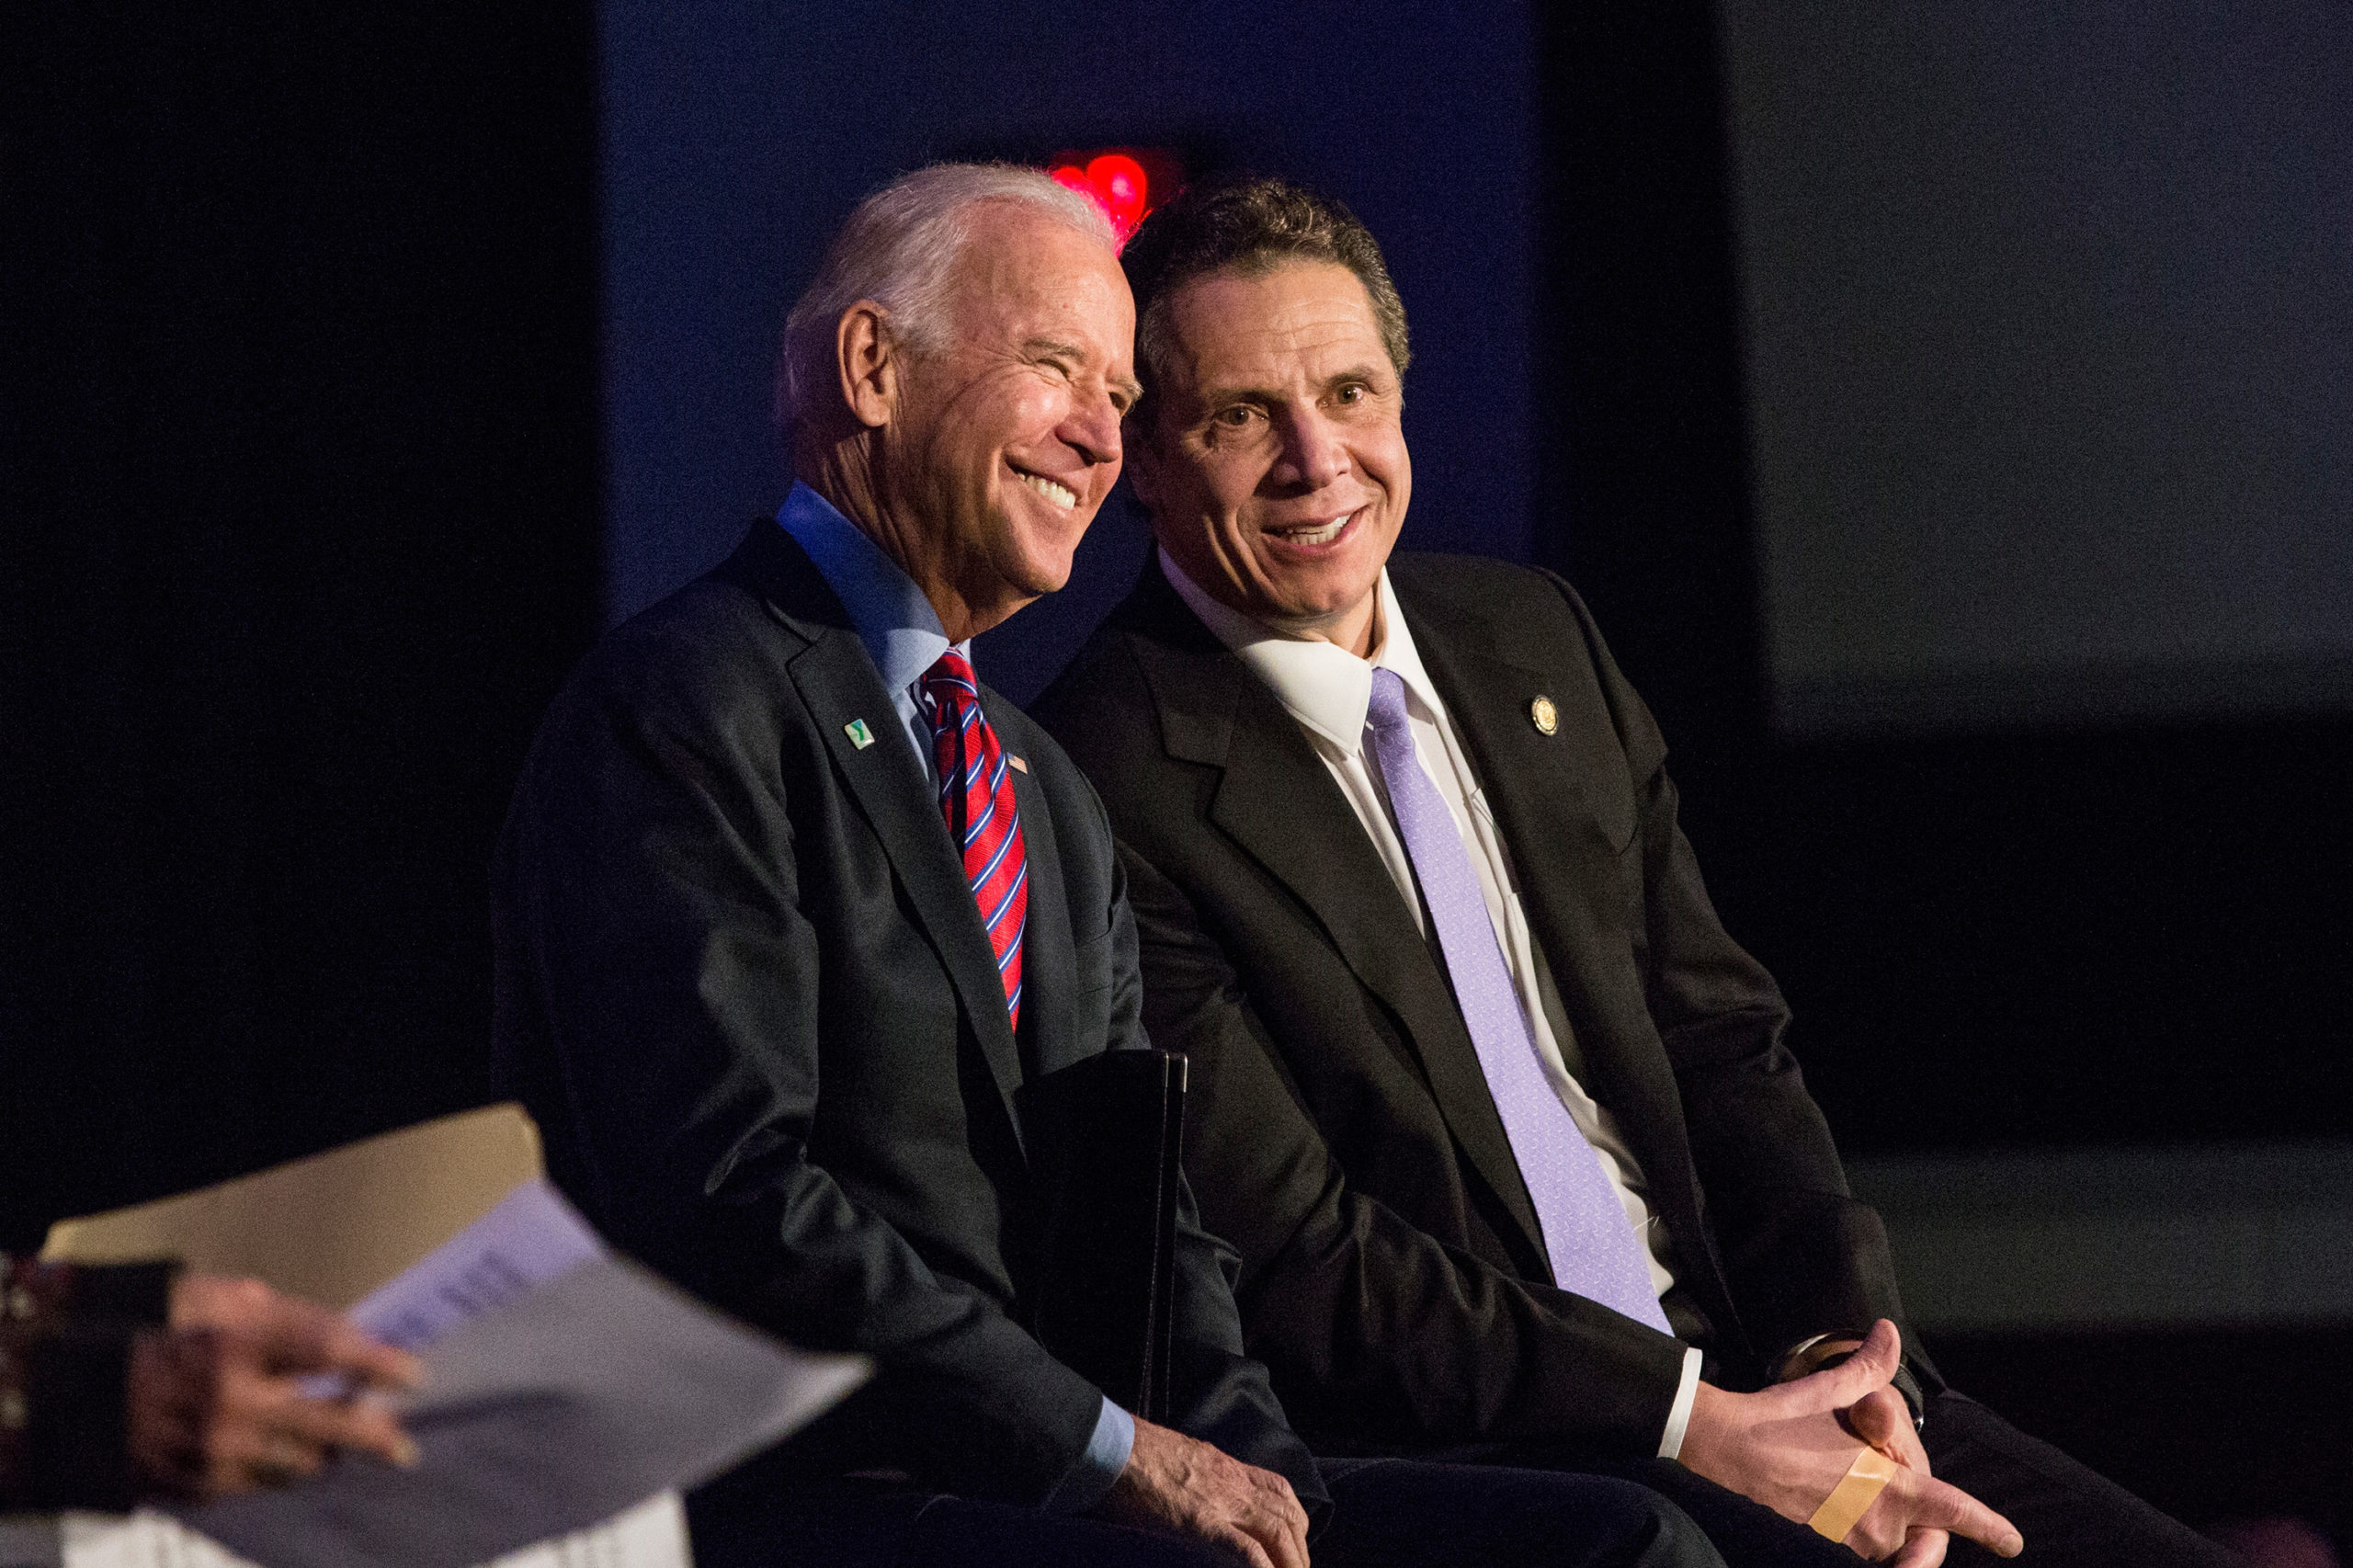 Joe Biden (L) and Andrew Cuomo attend a rally for paid family leave on January 29, 2016 in New York City. (Andrew Burton/Getty Images)